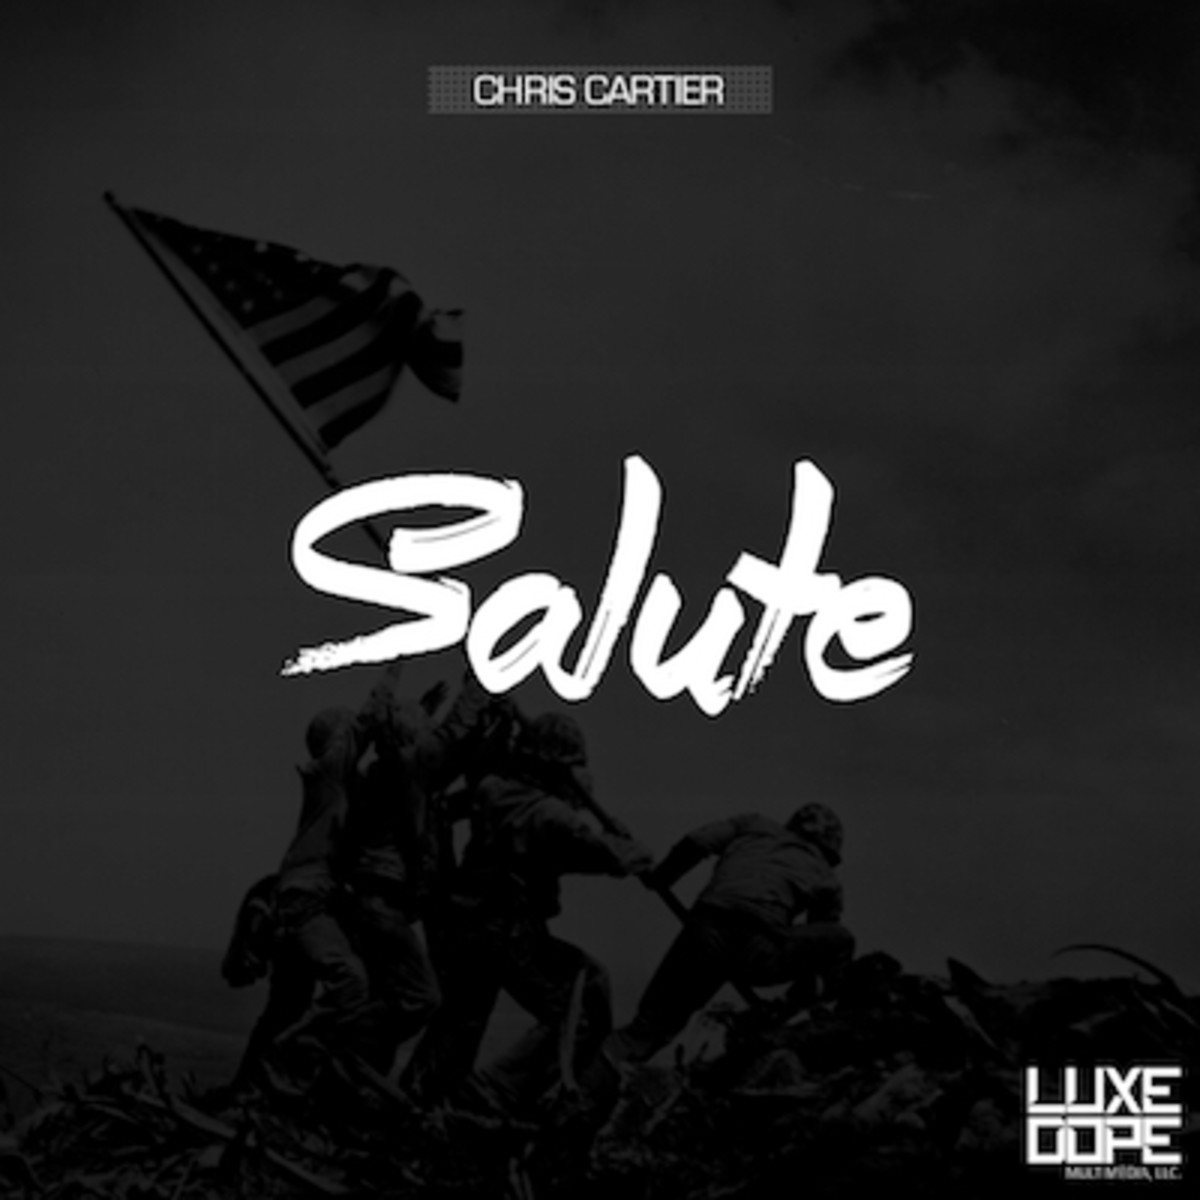 chris-cartier-salute.jpg